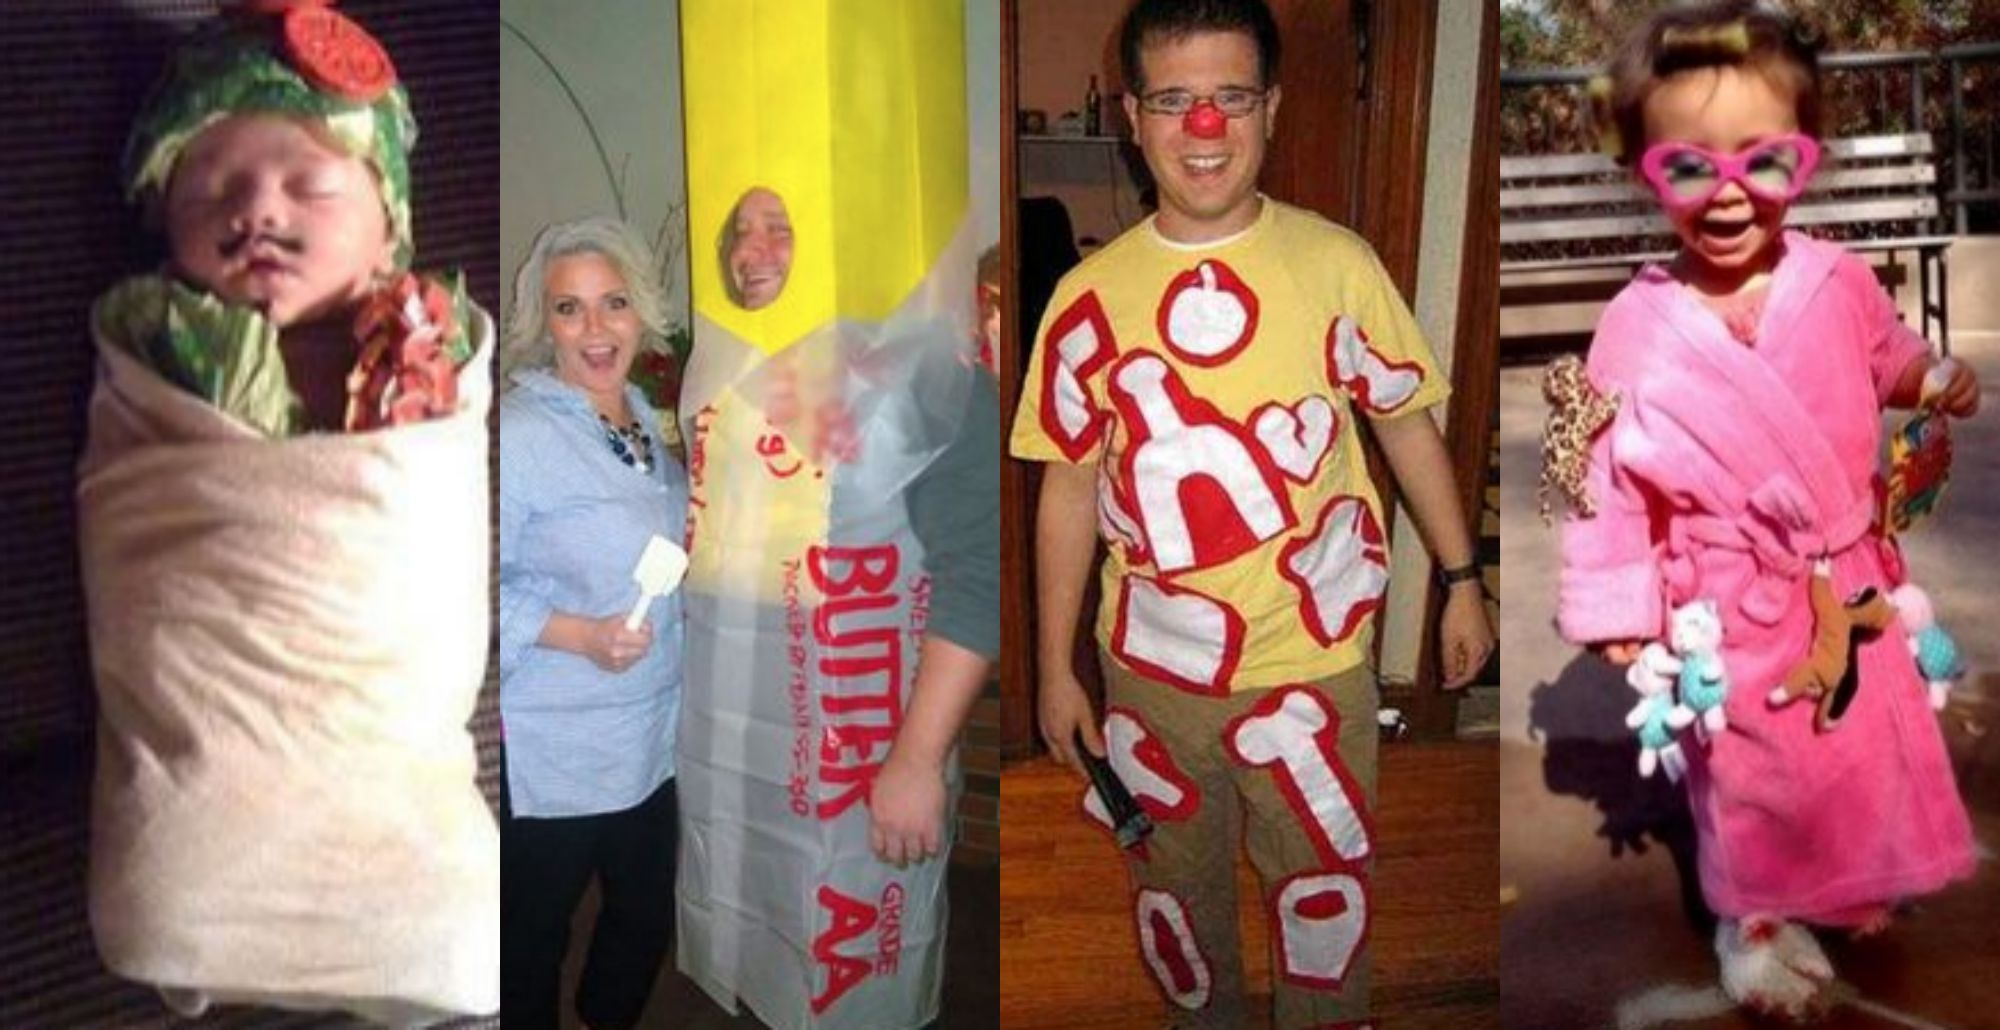 21 Halloween Costumes That Will Crack Everyone Up - Hilarious Halloween Costume Ideas  sc 1 st  Redbook & 21 Halloween Costumes That Will Crack Everyone Up - Hilarious ...